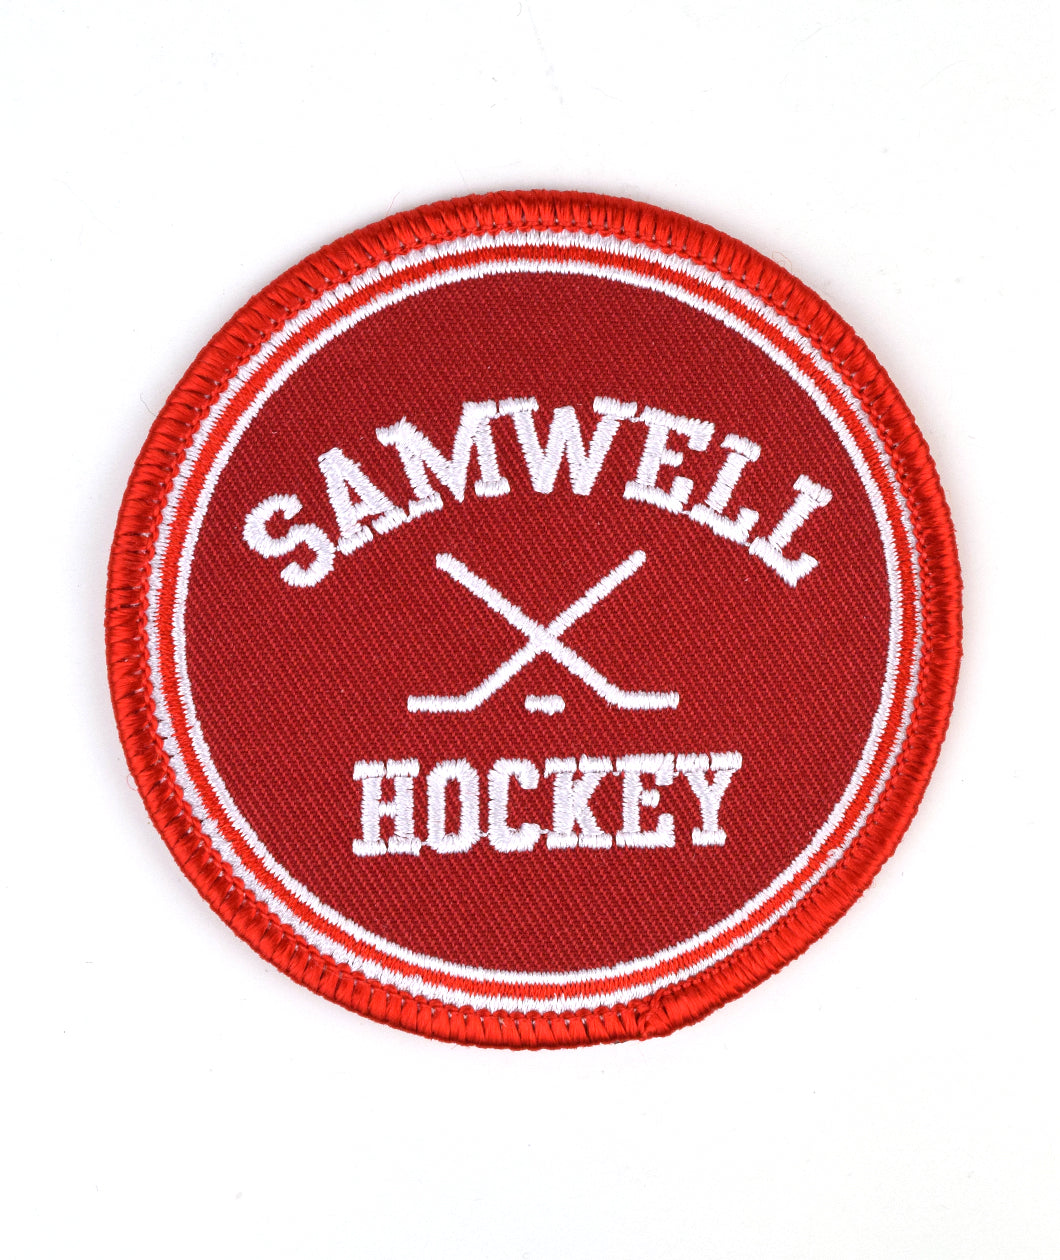 Samwell Mens Hockey Patch